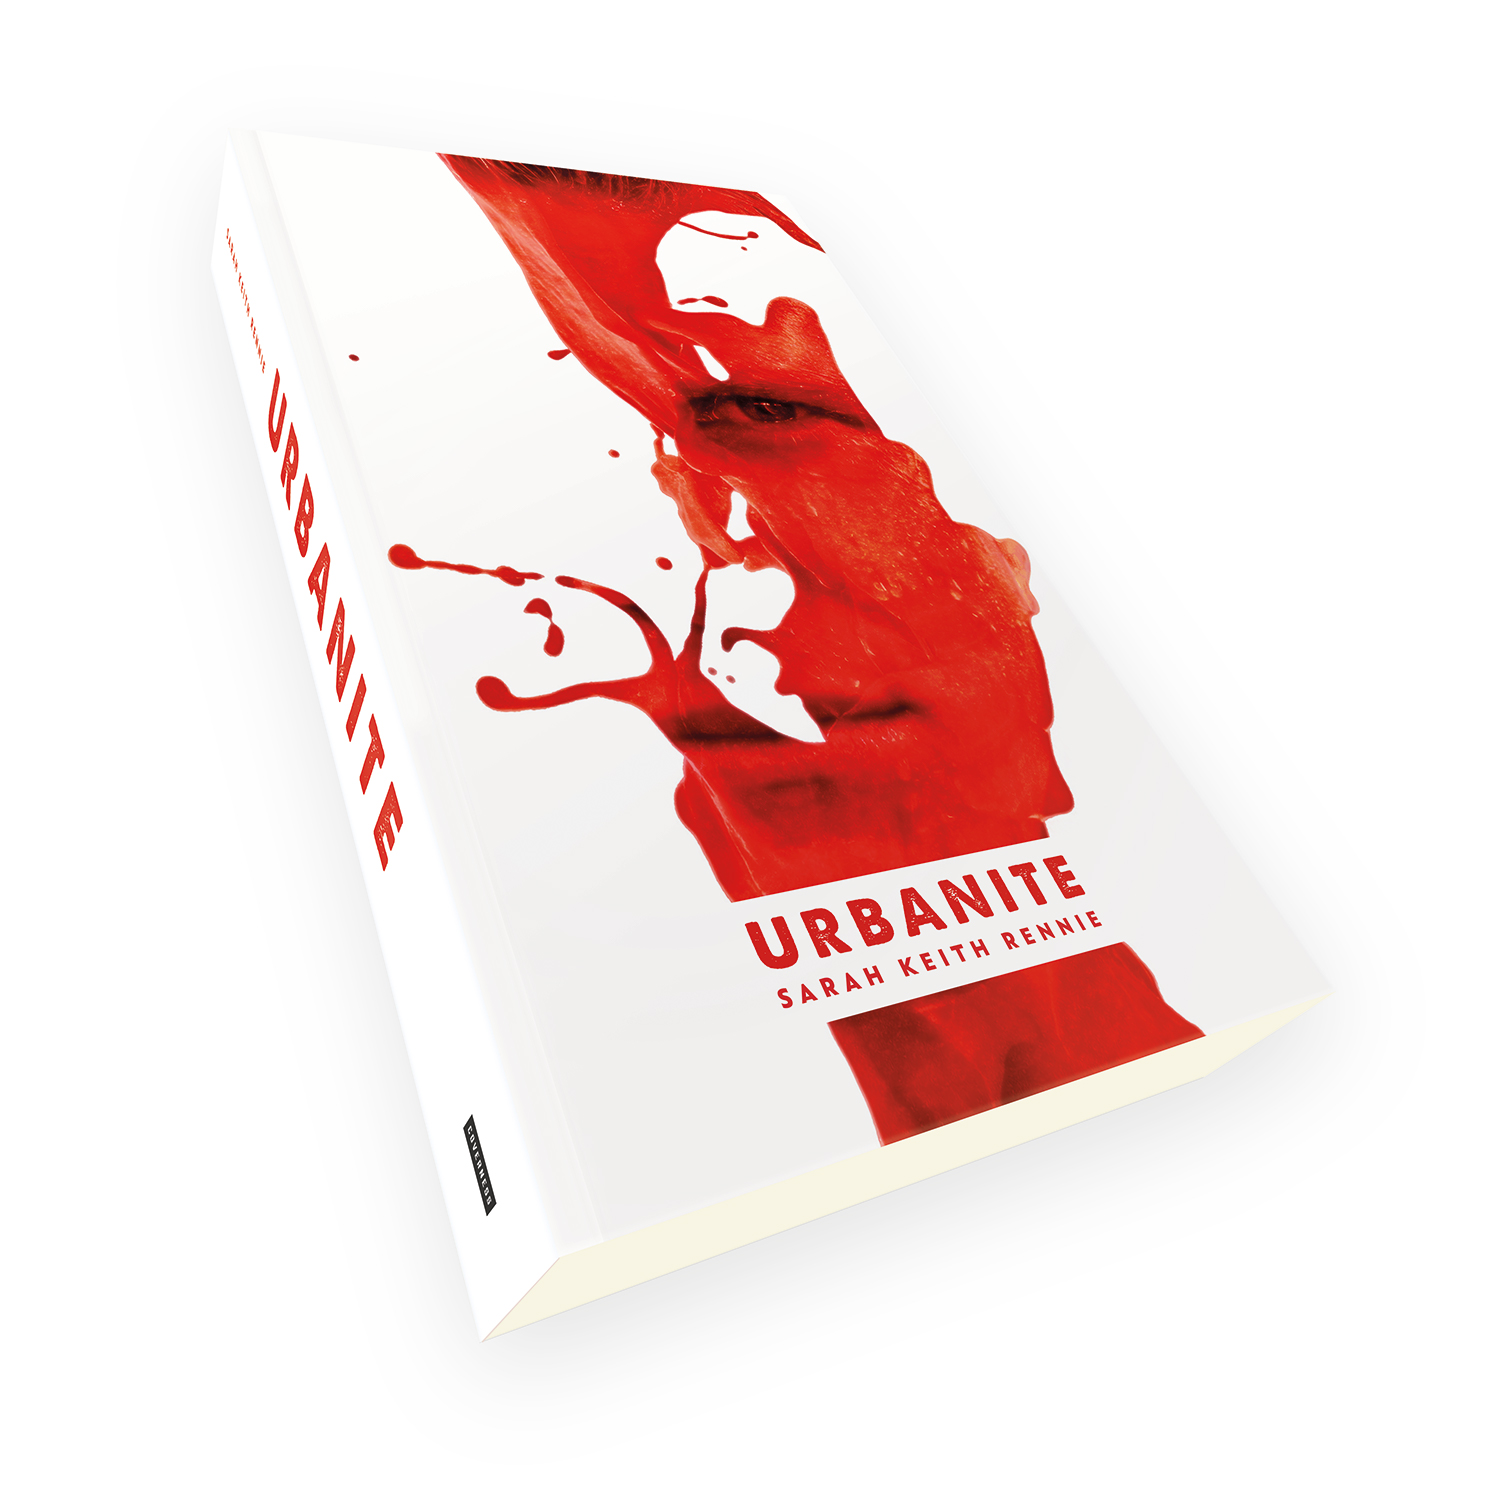 'Urbanite' is a bespoke cover design for a modern horror thriller. The book cover was designed by Mark Thomas, of coverness.com. To find out more about my book design services, please visit www.coverness.com.